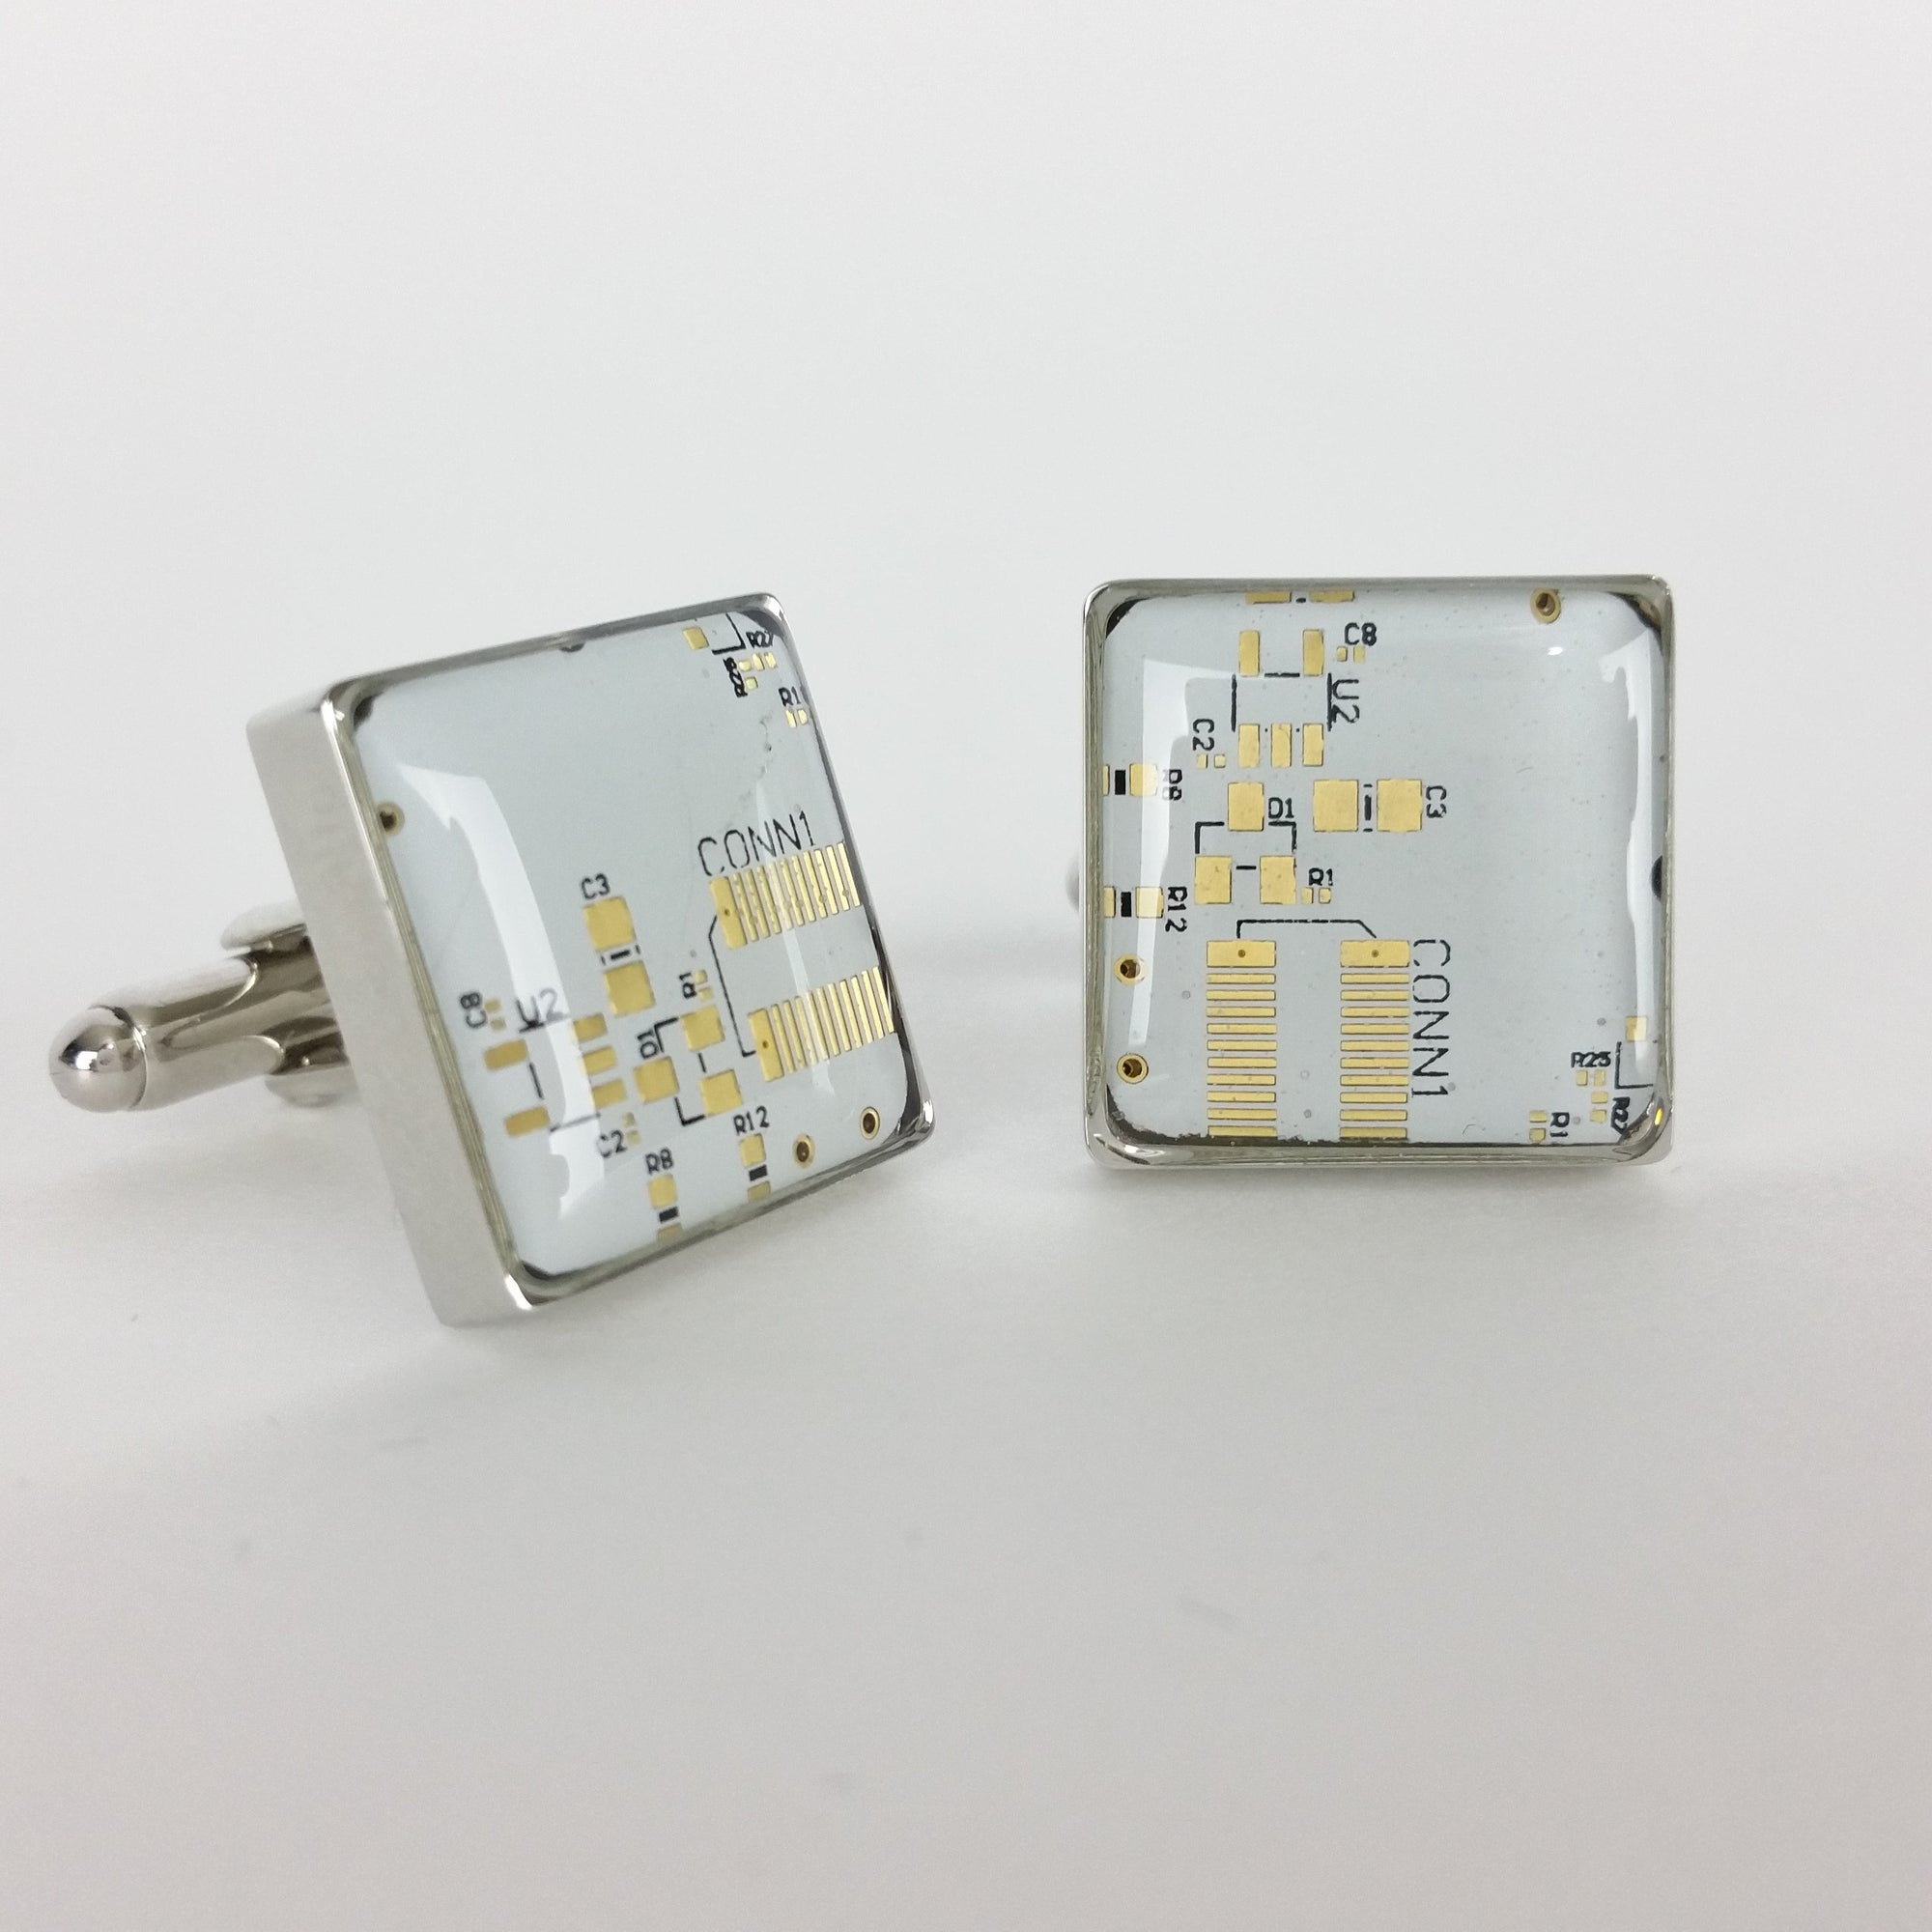 Circuit Board Rare White and Gold Circuit Board Cufflinks - TechWears Ltd